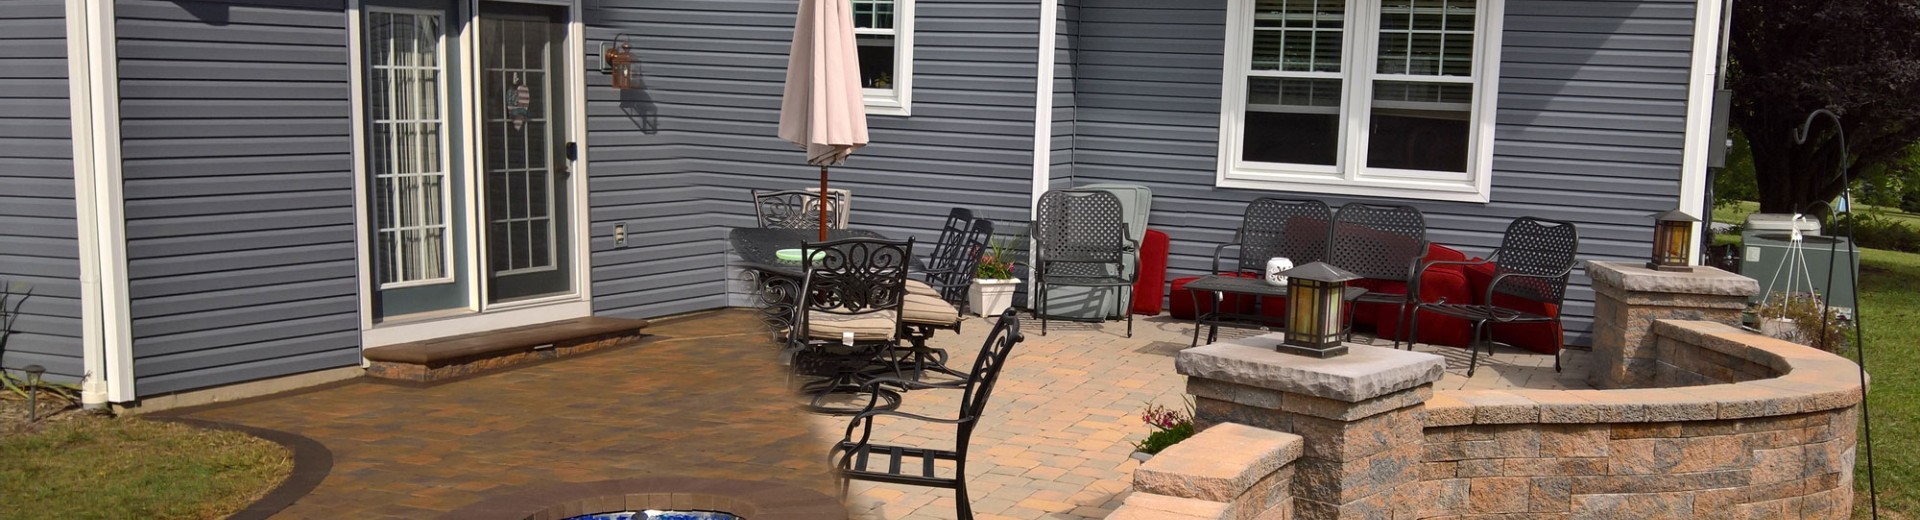 Patio Cleaning and Sealing Services in PA